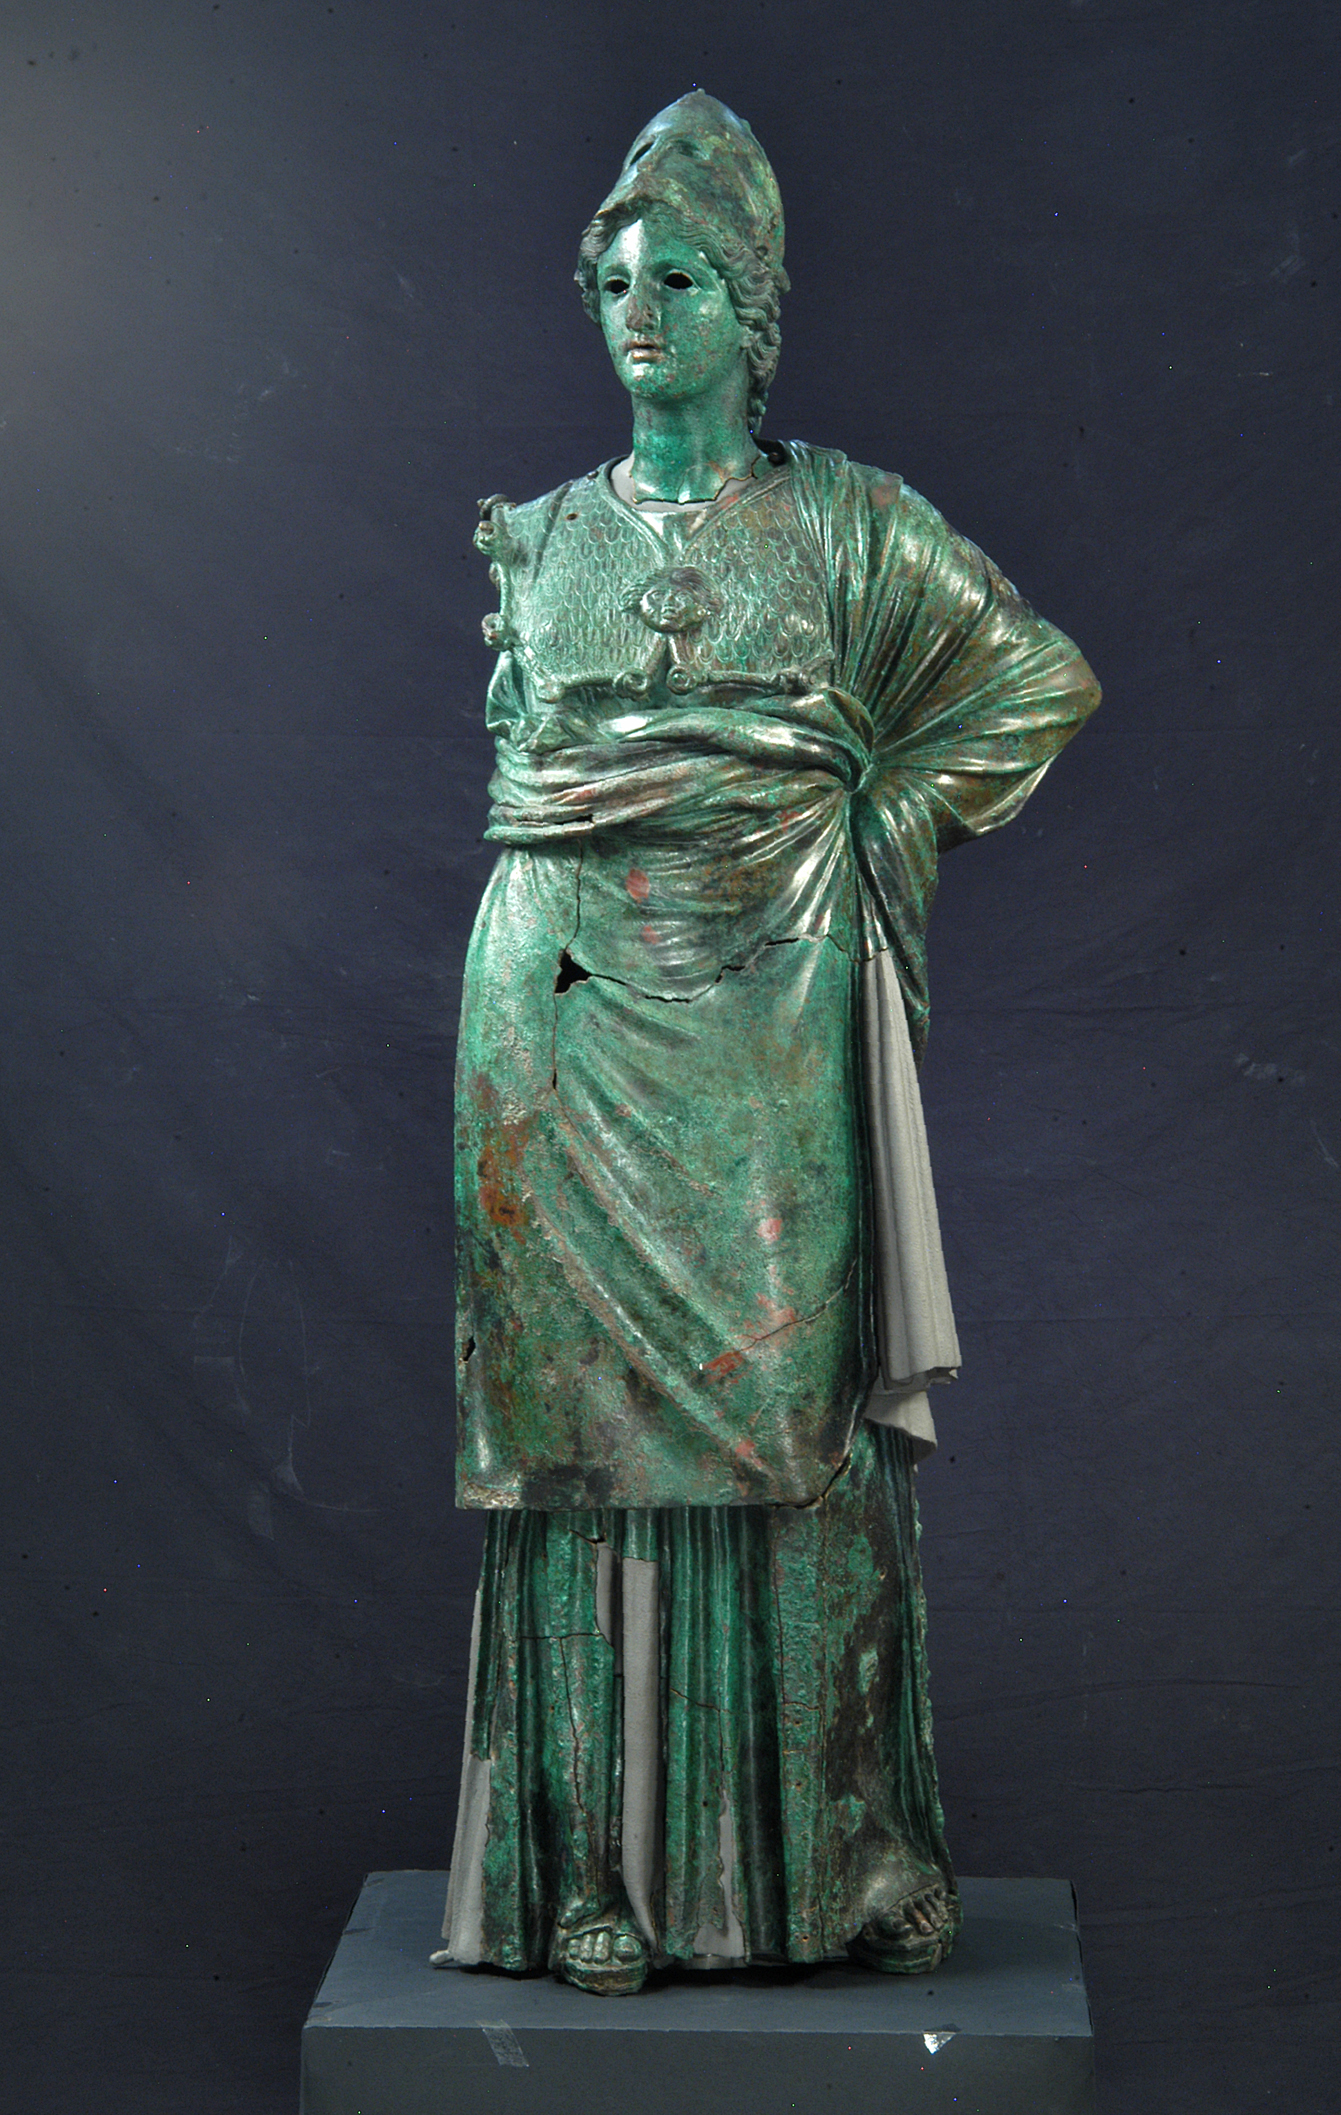 Athena (Minerva of Arezzo) 300–270 BCE, bronze, copper, 155 x 50 x 50 cm,  Florence, Museo Archeologico Nazionale (courtesy of Florence exhibition)